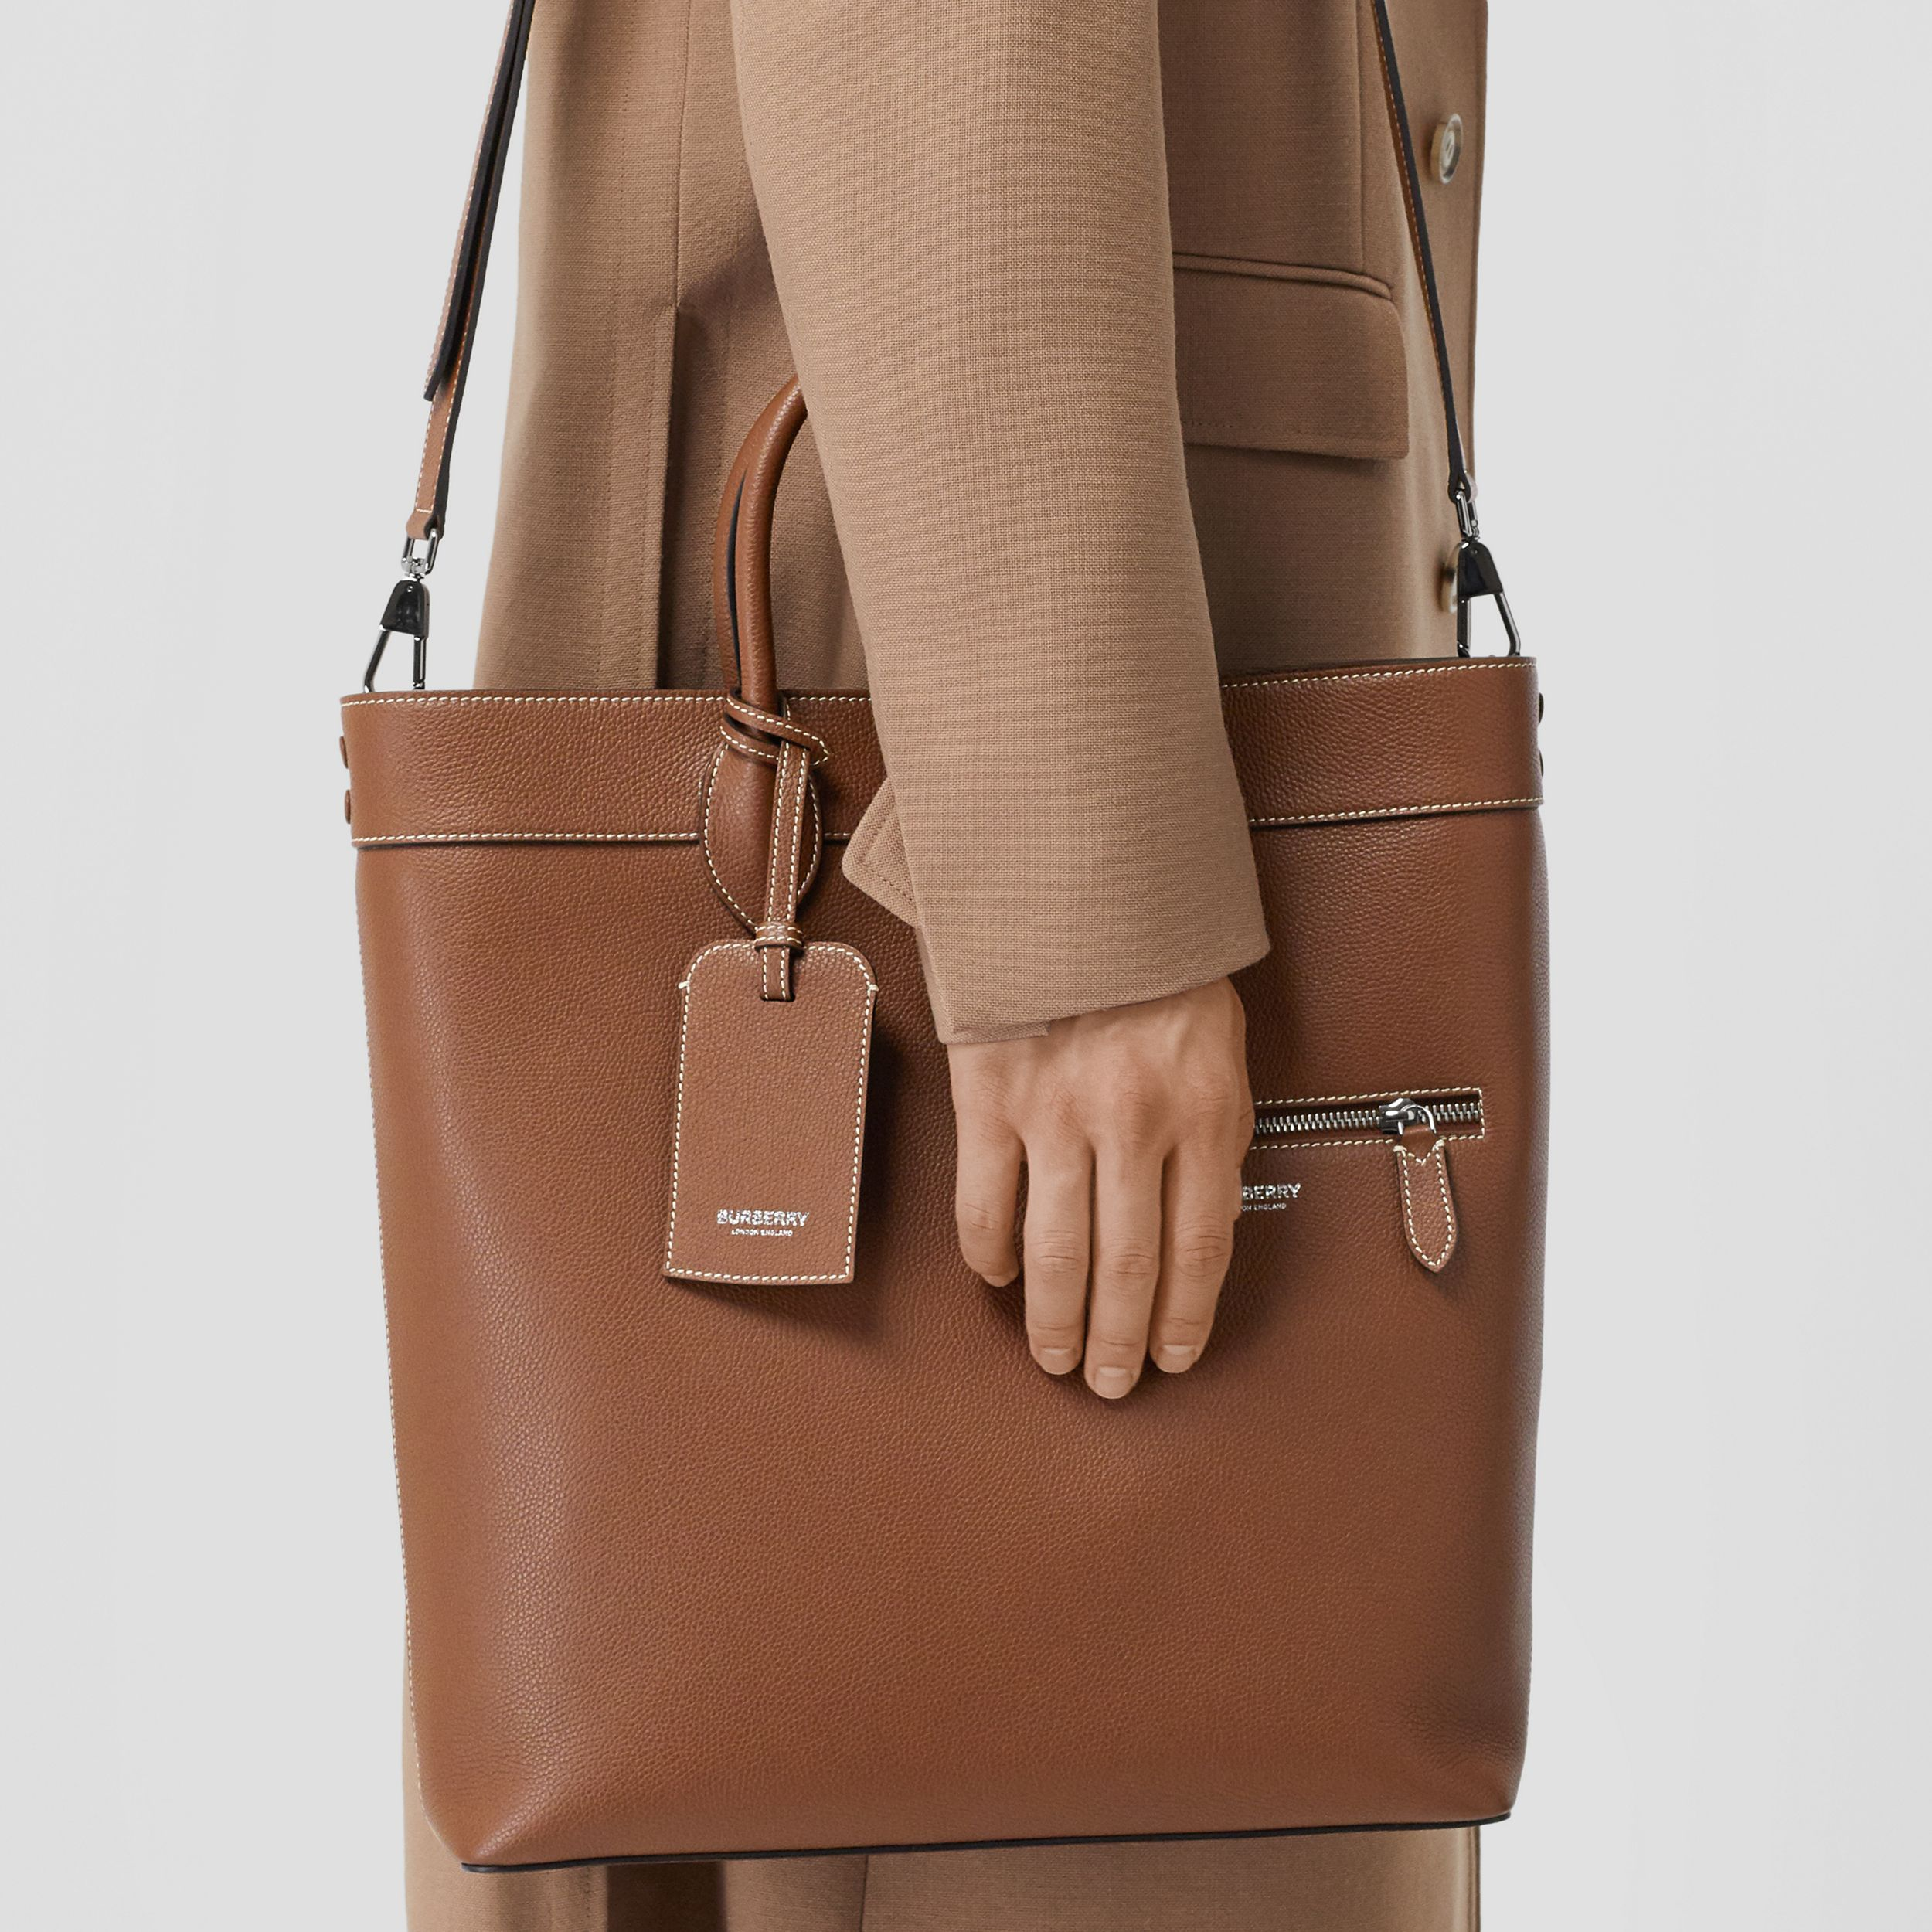 Grainy Leather Tote in Tan | Burberry - 4